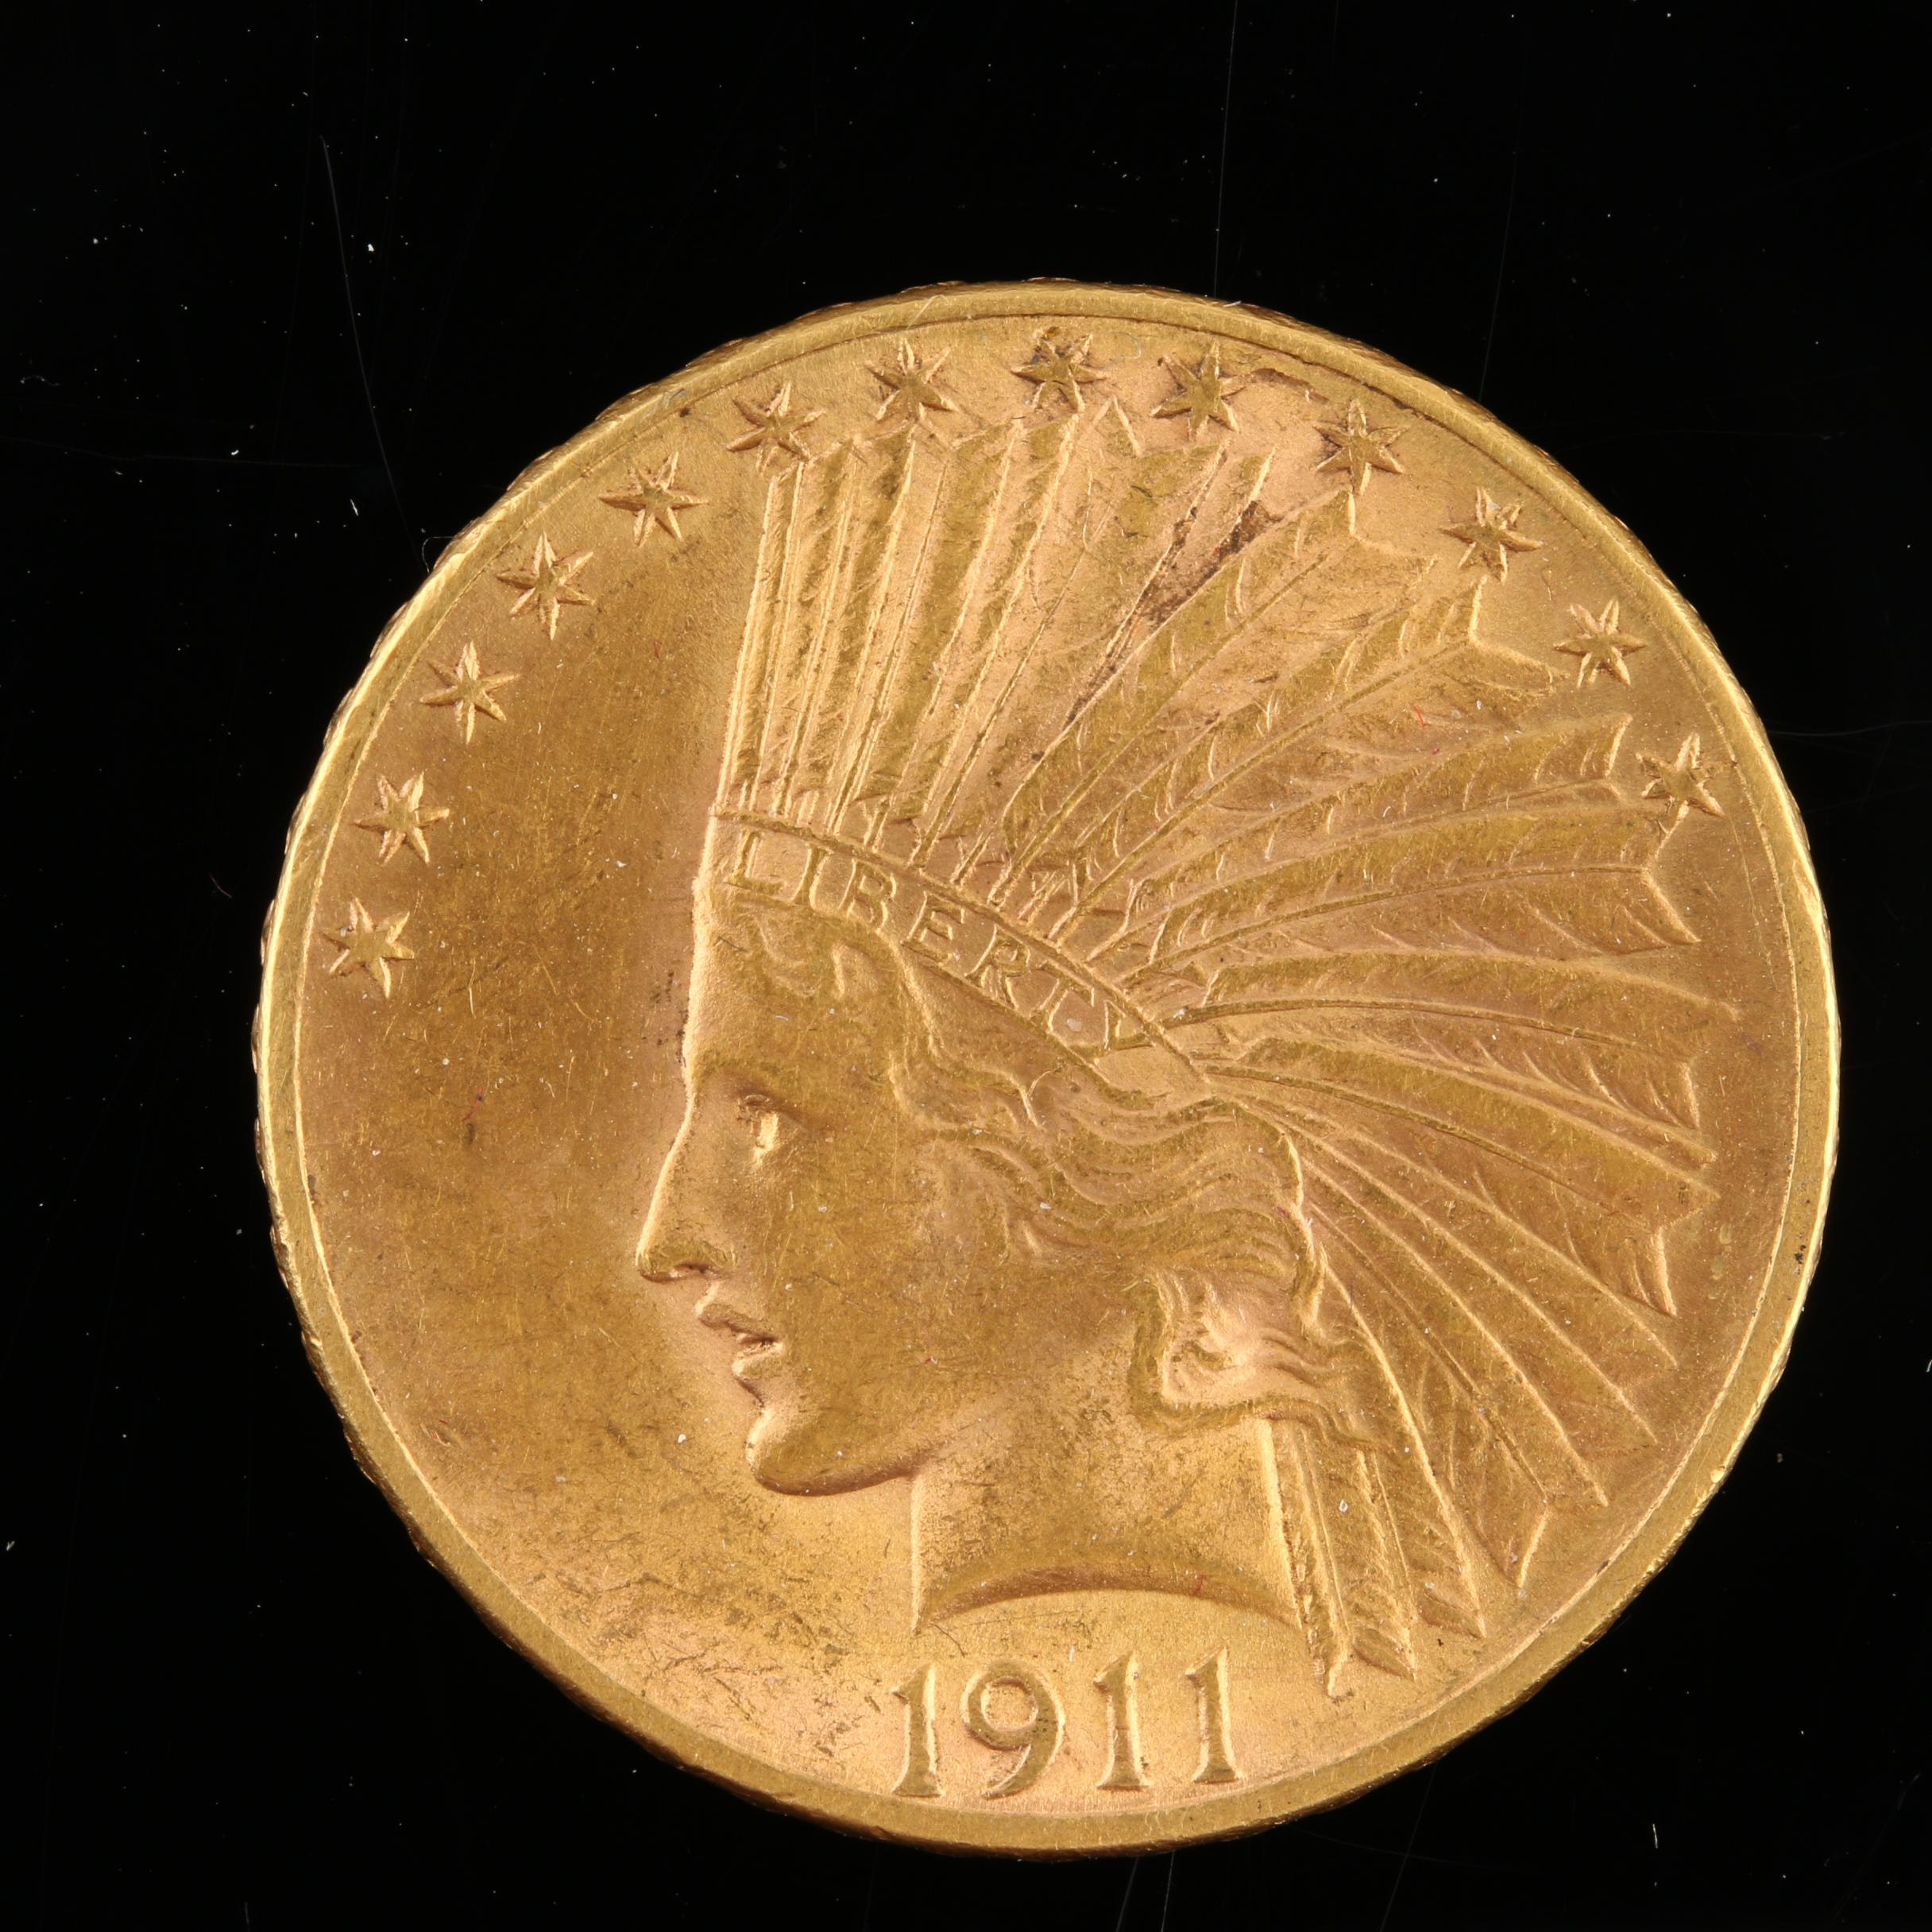 1911 Indian Head $10 Gold Eagle